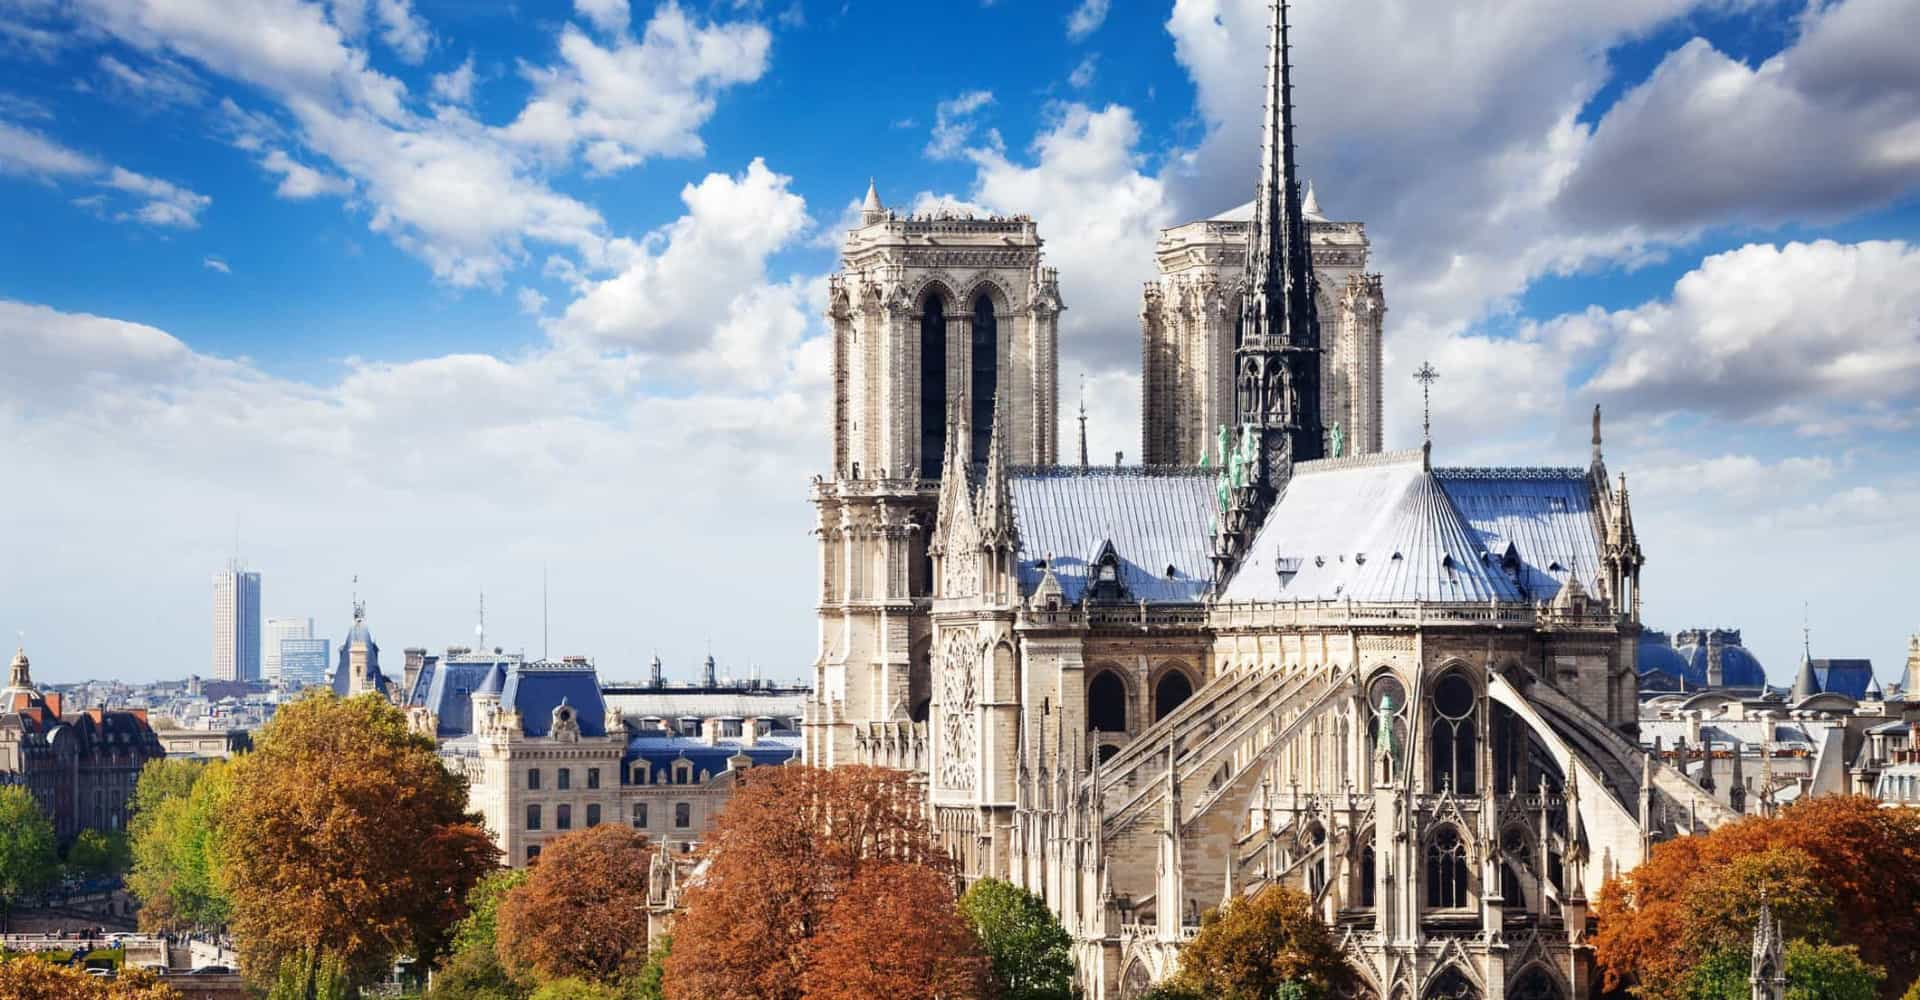 Never seen Notre-Dame? Here's your chance